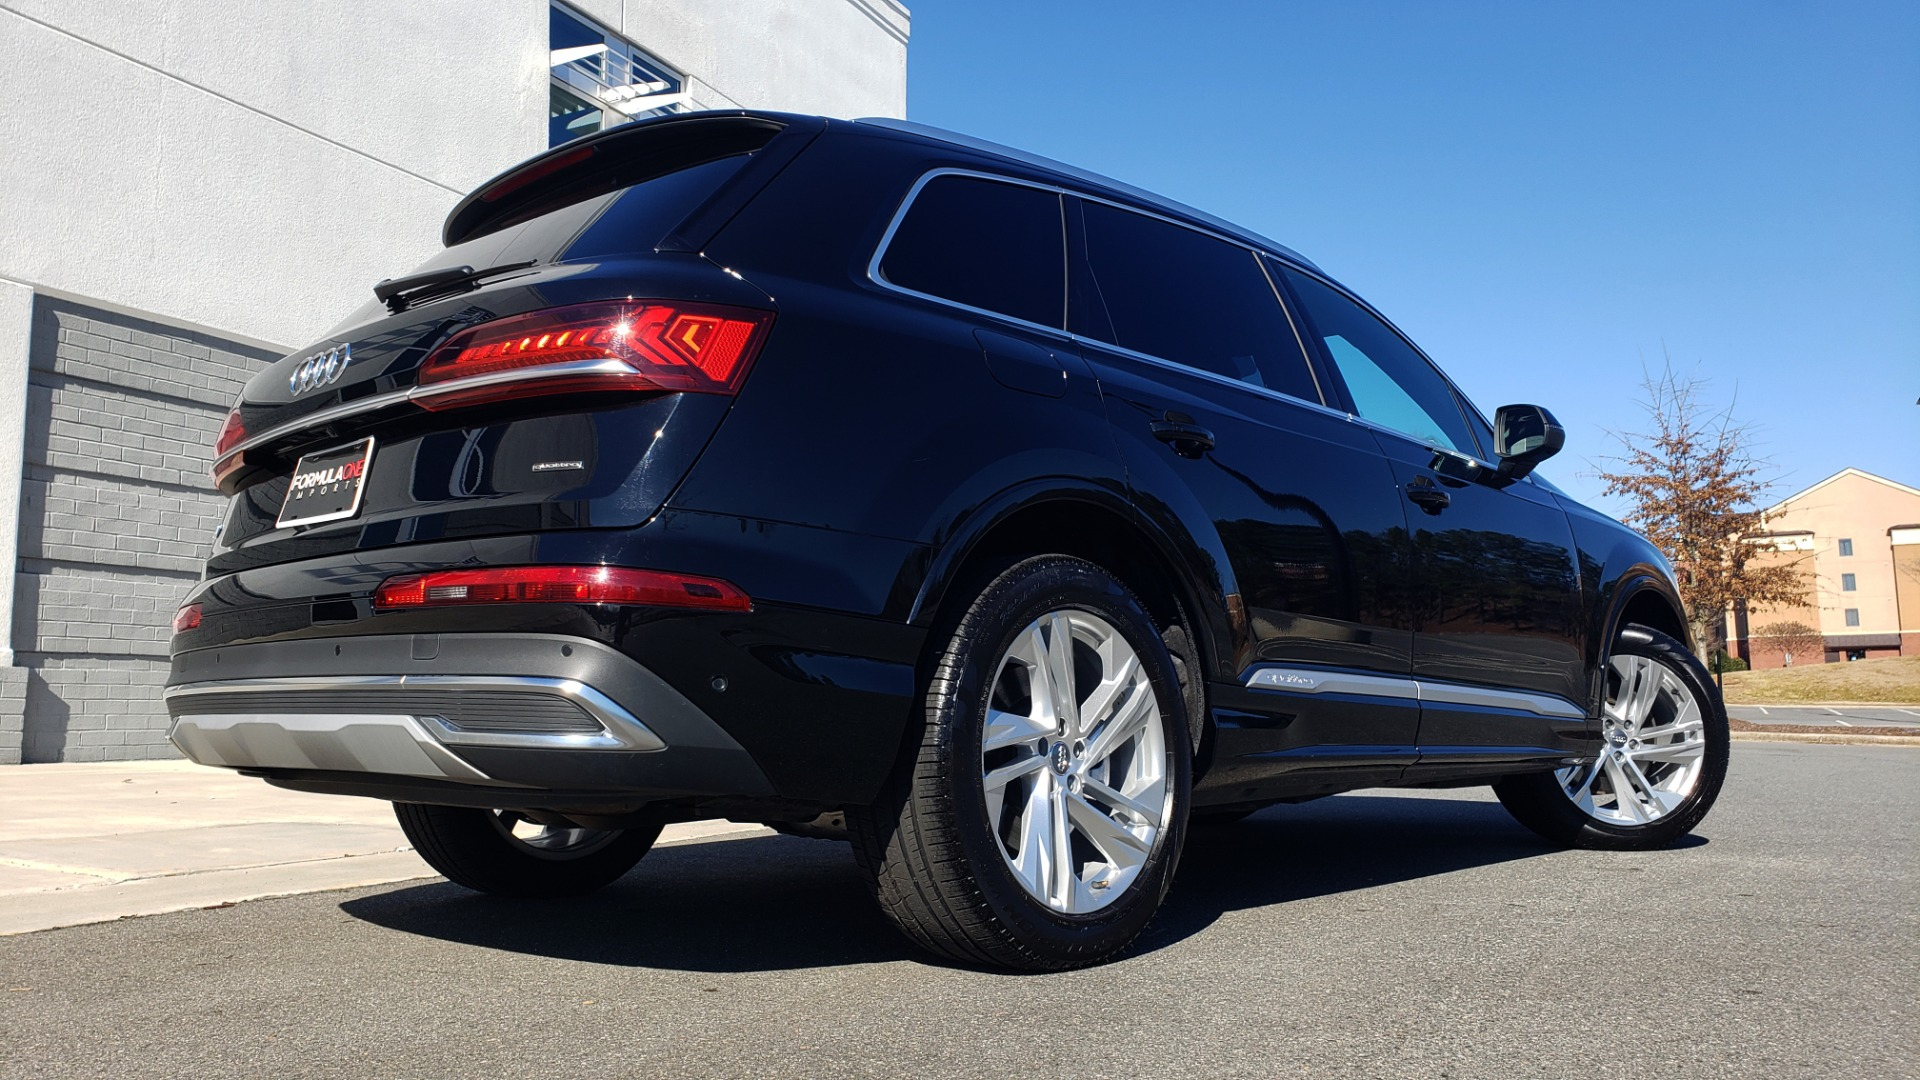 Used 2020 Audi Q7 PREMIUM PLUS / NAV / SUNROOF / 3-ROW / REARVIEW for sale $50,695 at Formula Imports in Charlotte NC 28227 3